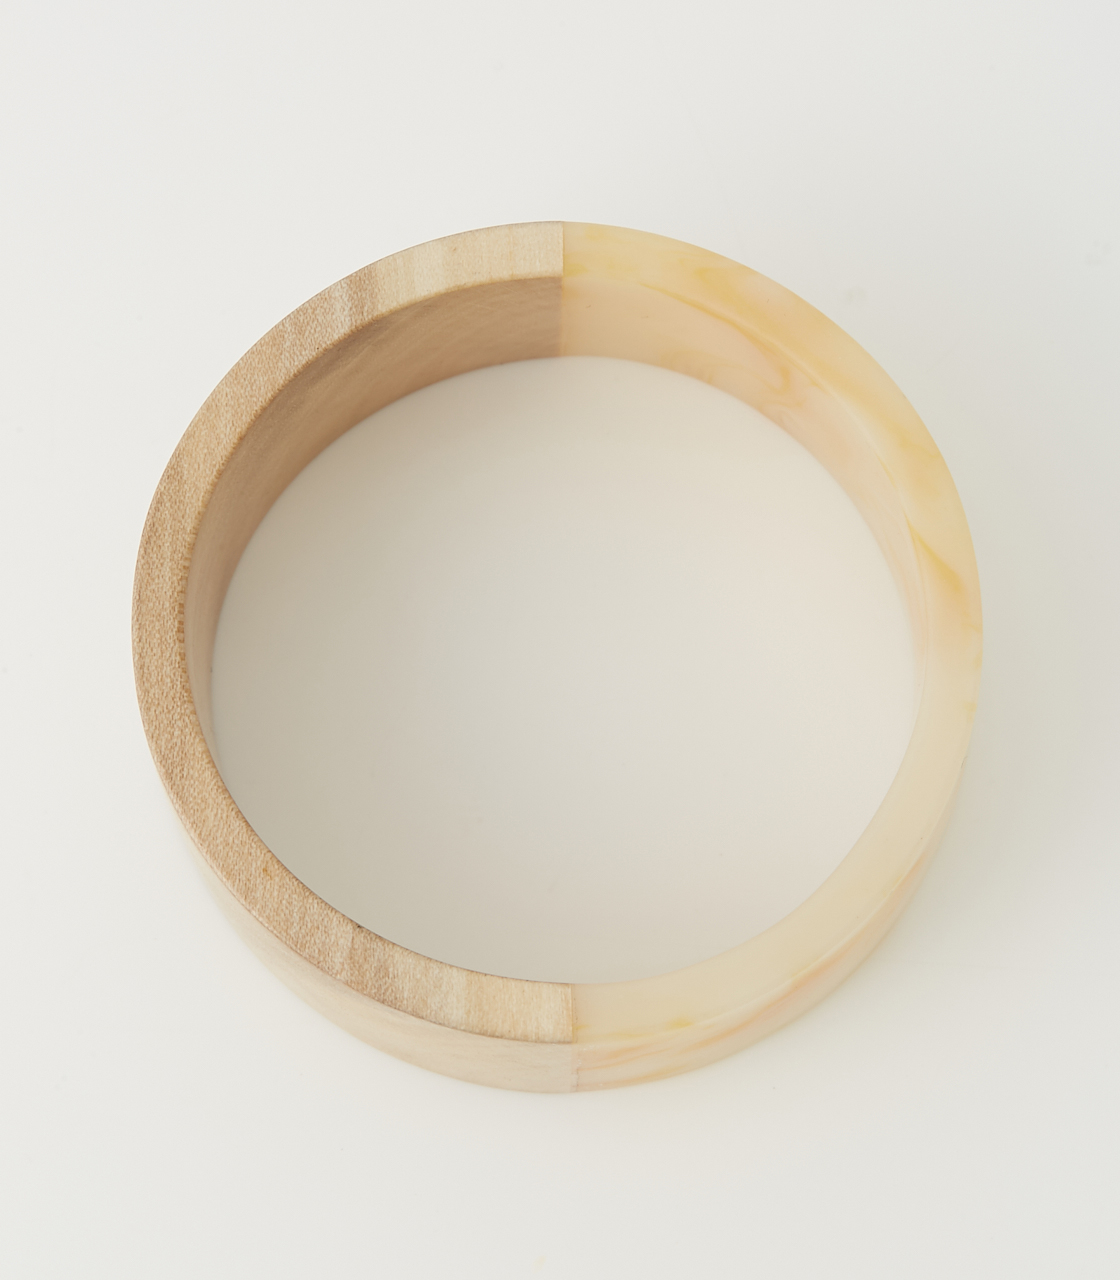 WOOD BLOCKING BANGLE 詳細画像 柄WHT 2